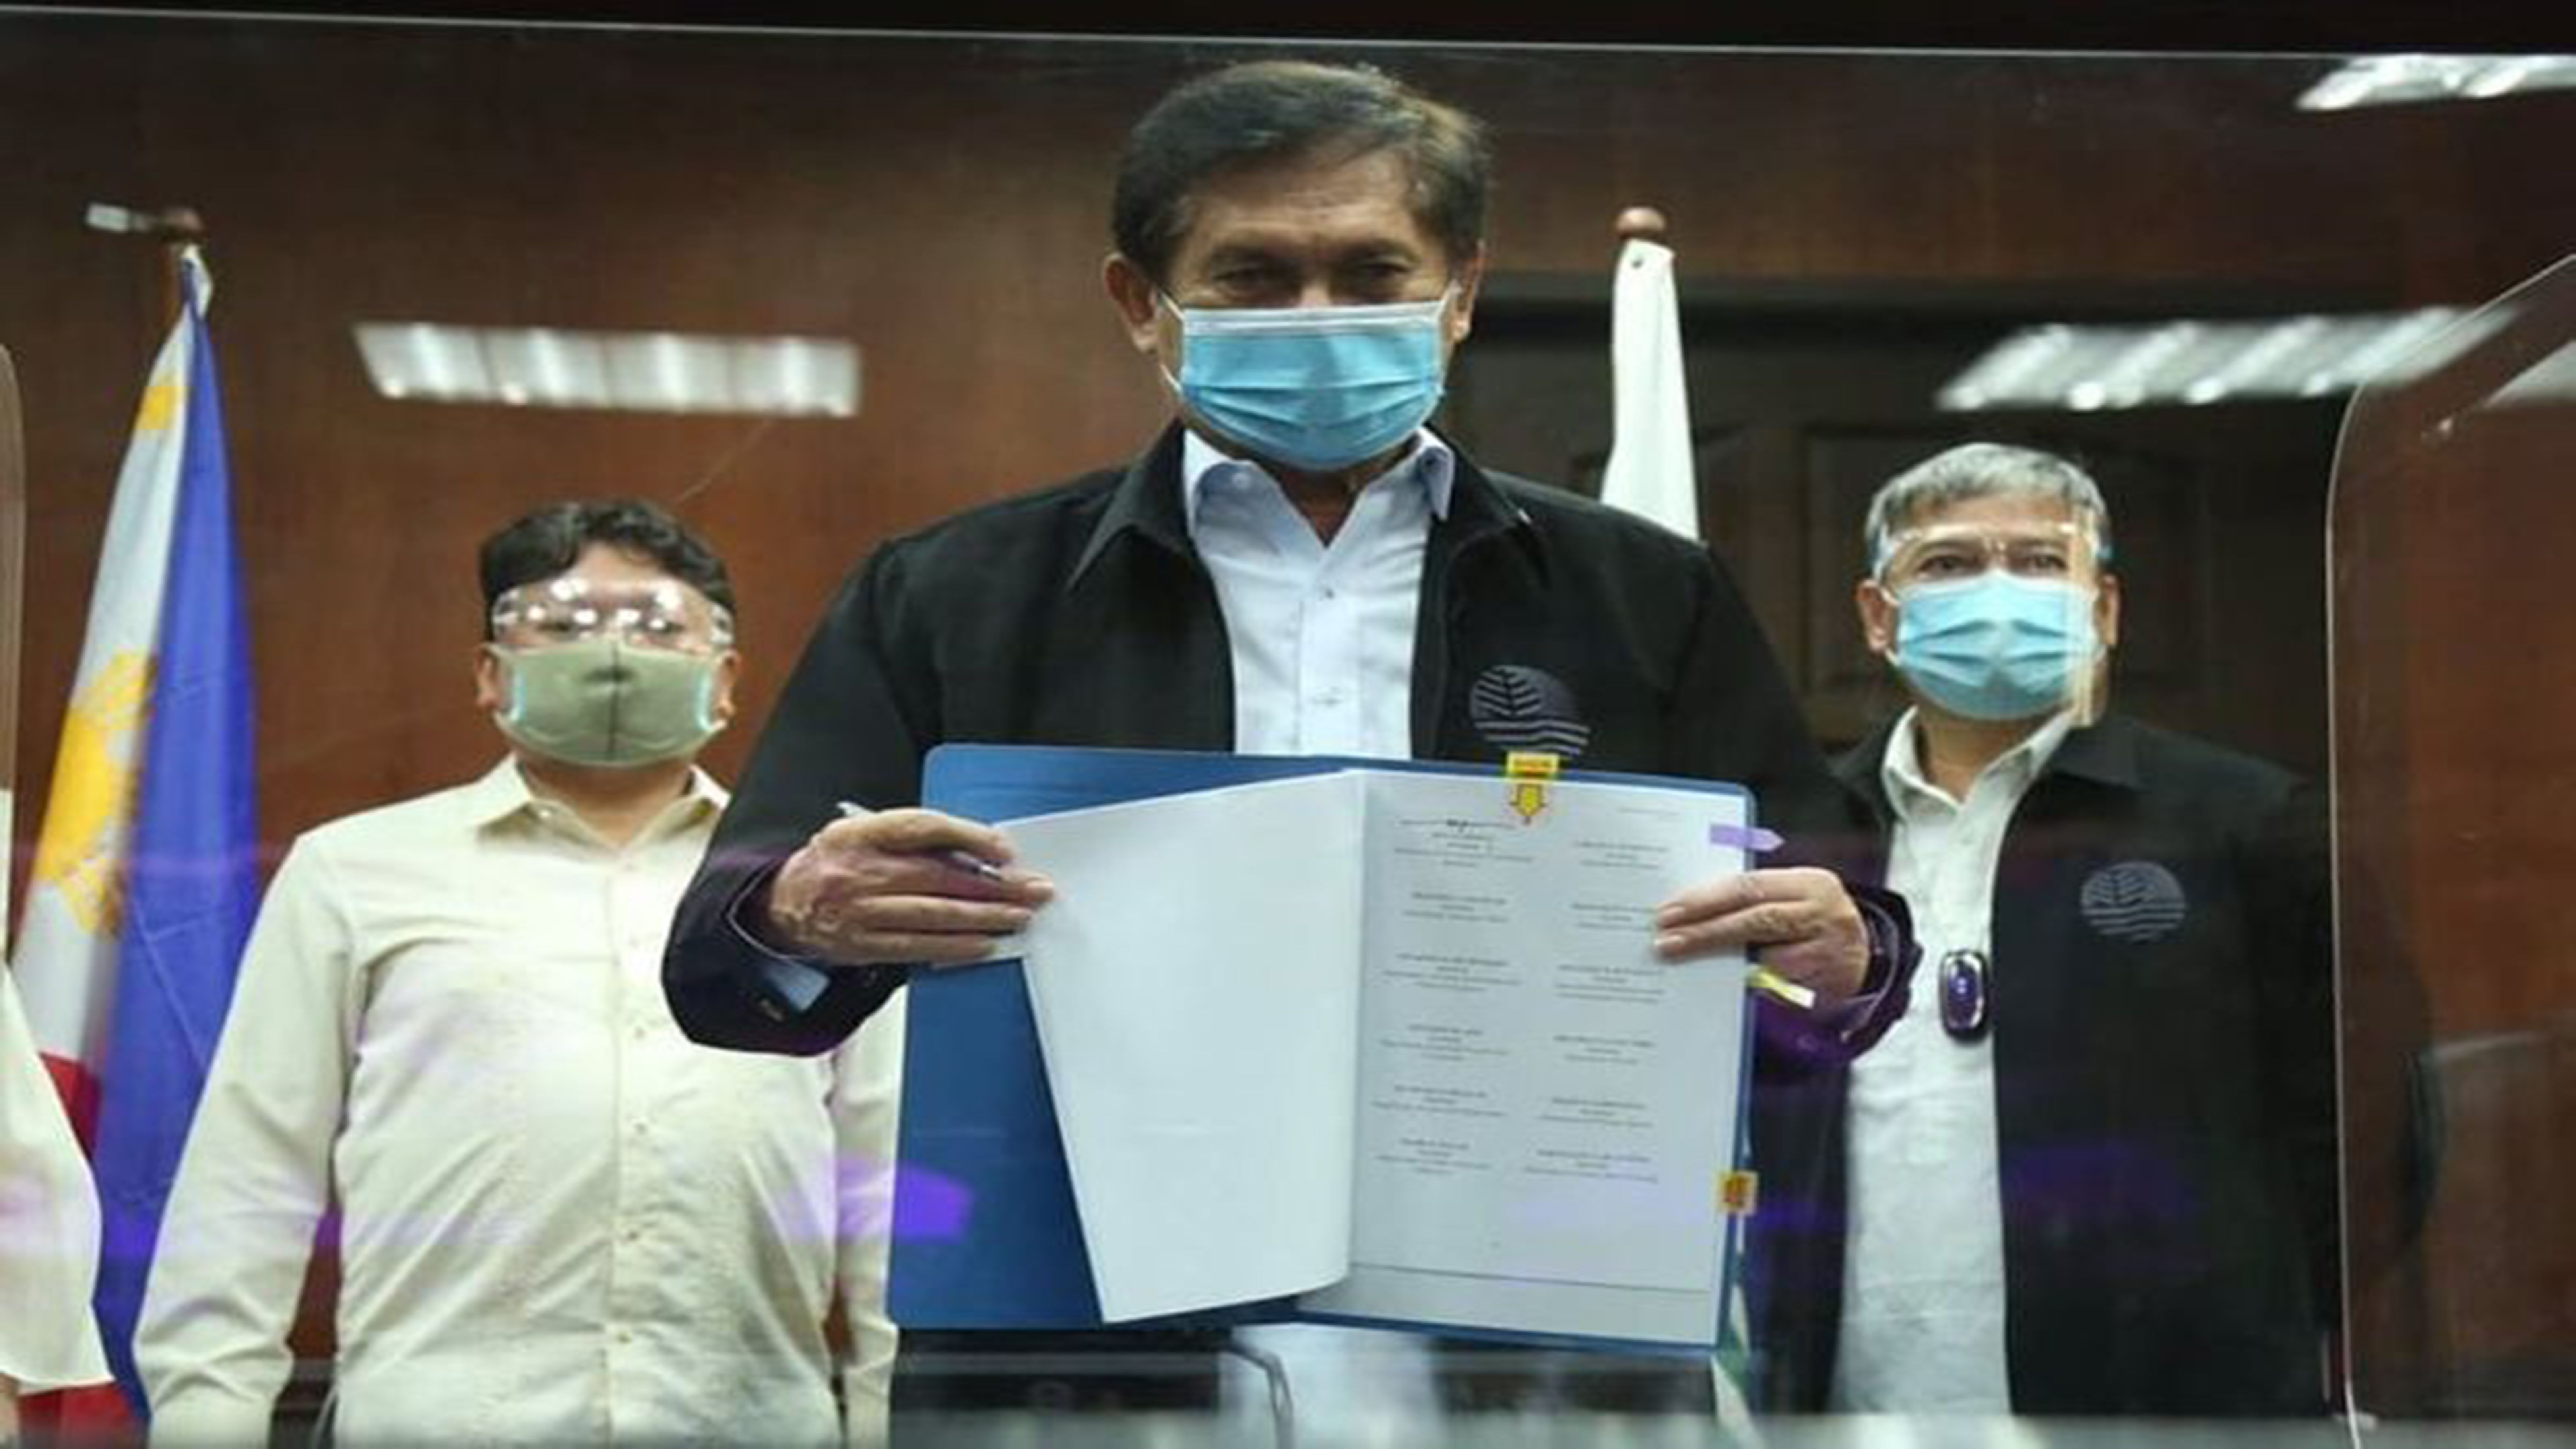 Cimatu lauds launch of PACC-led nat'l anti-corruption program photo from Leader News Philippines